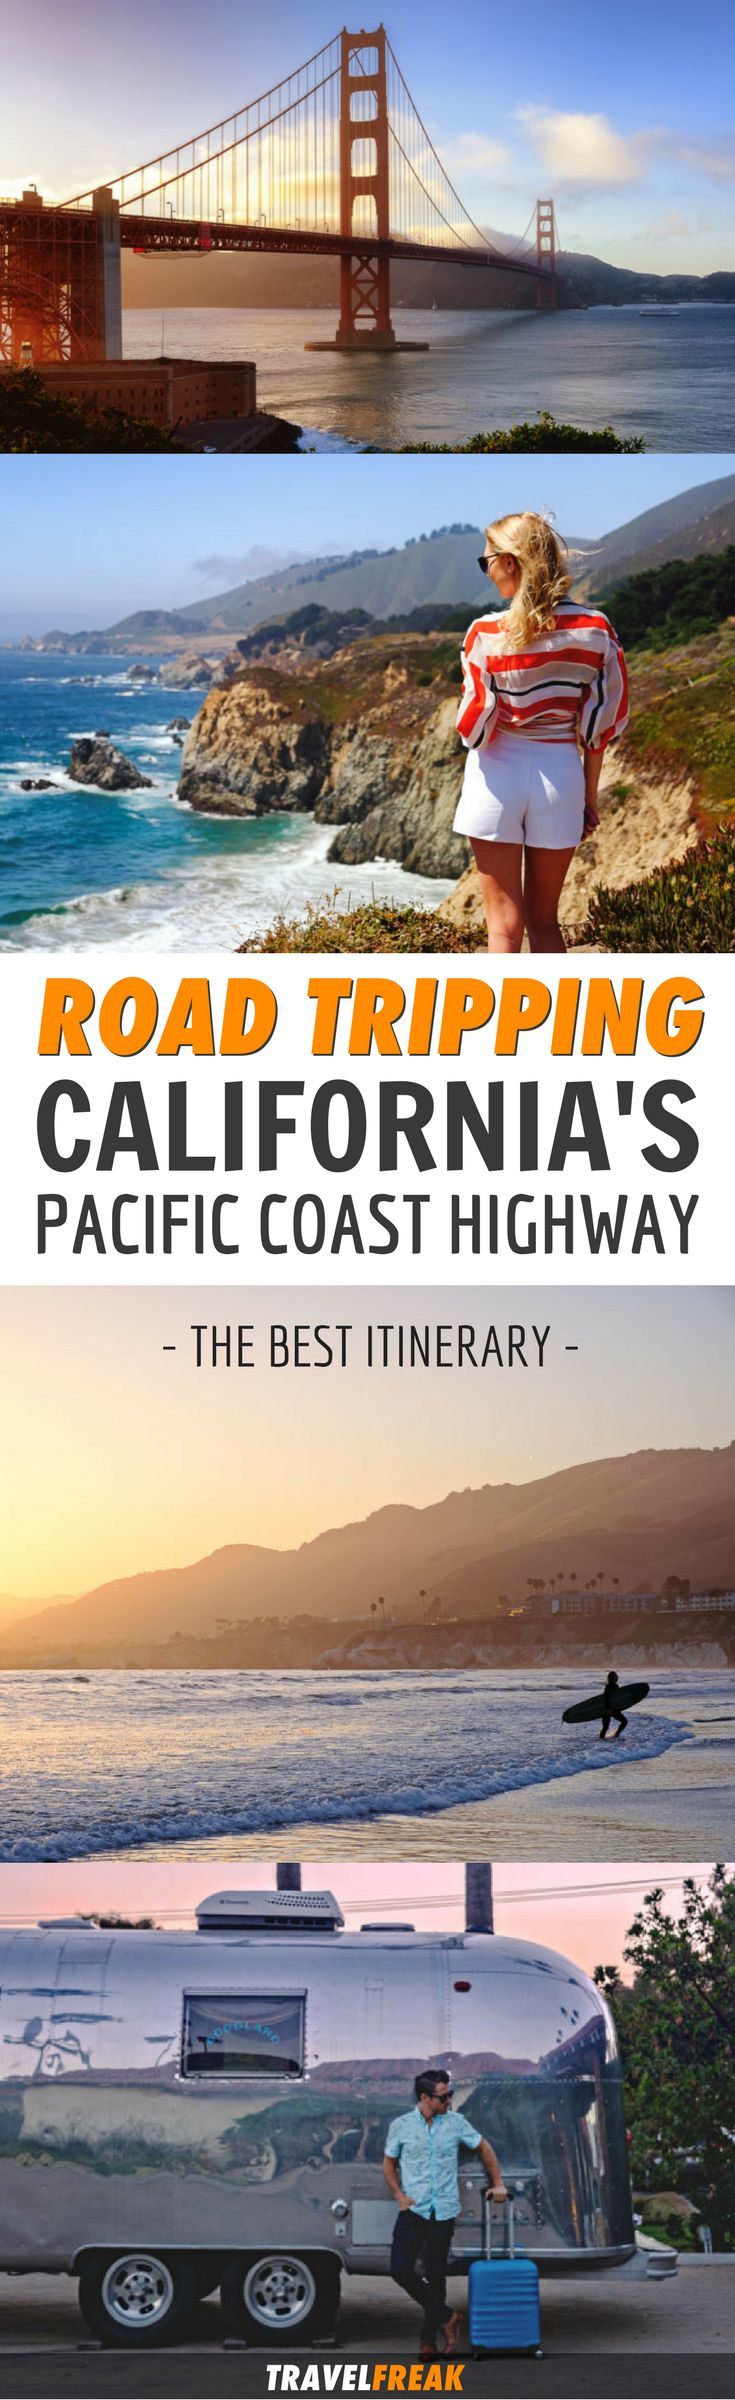 A Pacific Coast Highway road trip is the ultimate experience for those seeking adventure. Read this article for everything you need to know before starting your road trip to the Pacific Coast Highway. Ready to feel the wanderlust? Pacific Coast Highway Photography | Pacific Coast Highway Map| Pacific Coast Highway Stops #SantaMonica #Malibu #PacificCoastHighway via @travelfreak_